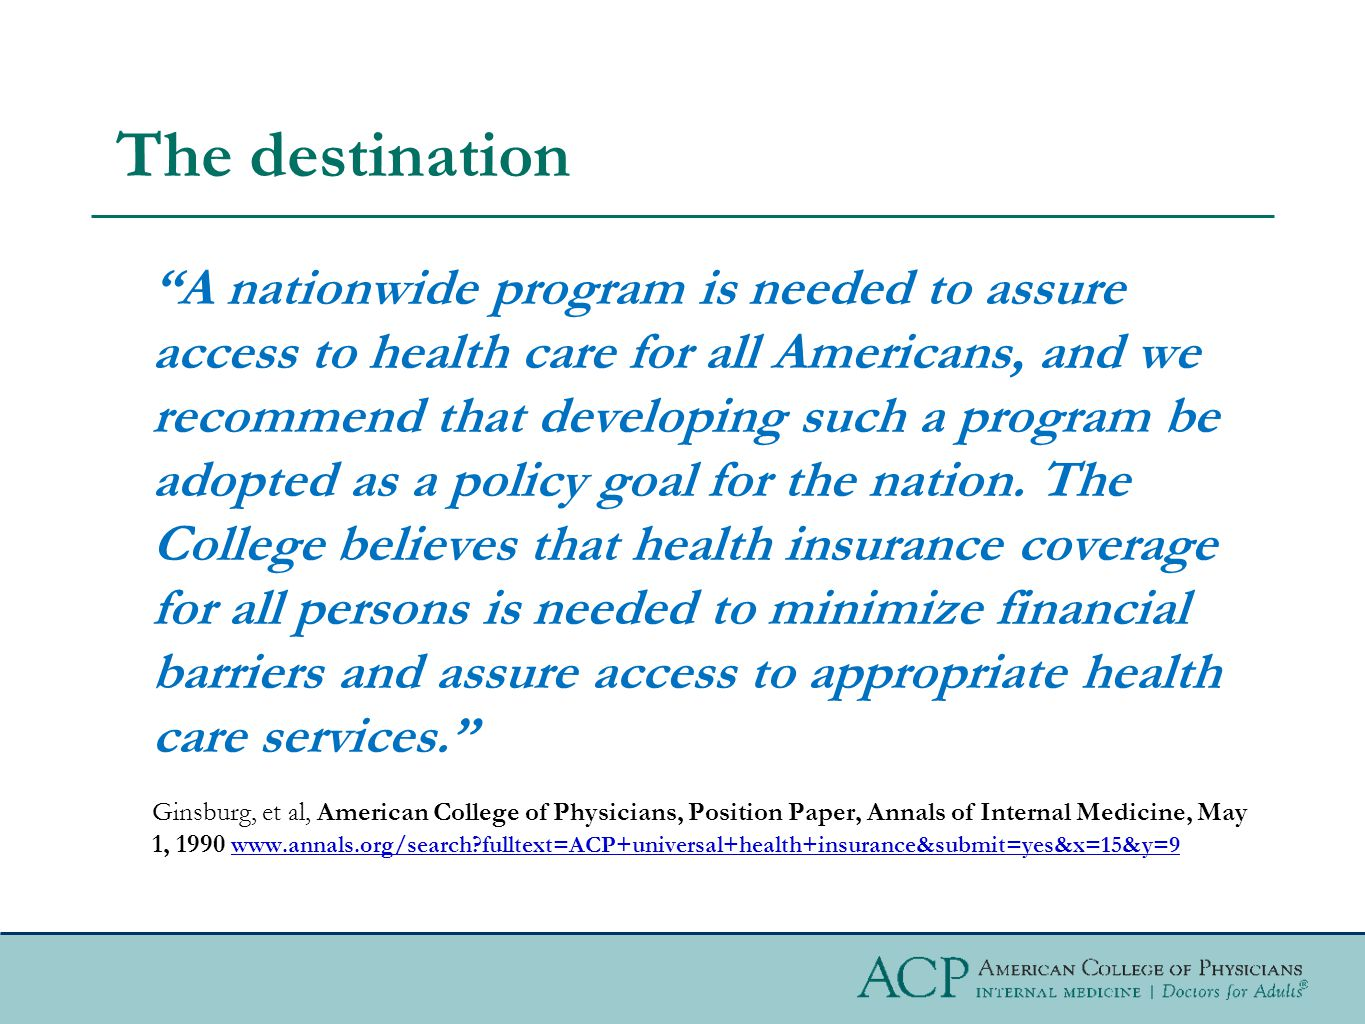 The destination A nationwide program is needed to assure access to health care for all Americans, and we recommend that developing such a program be adopted as a policy goal for the nation.